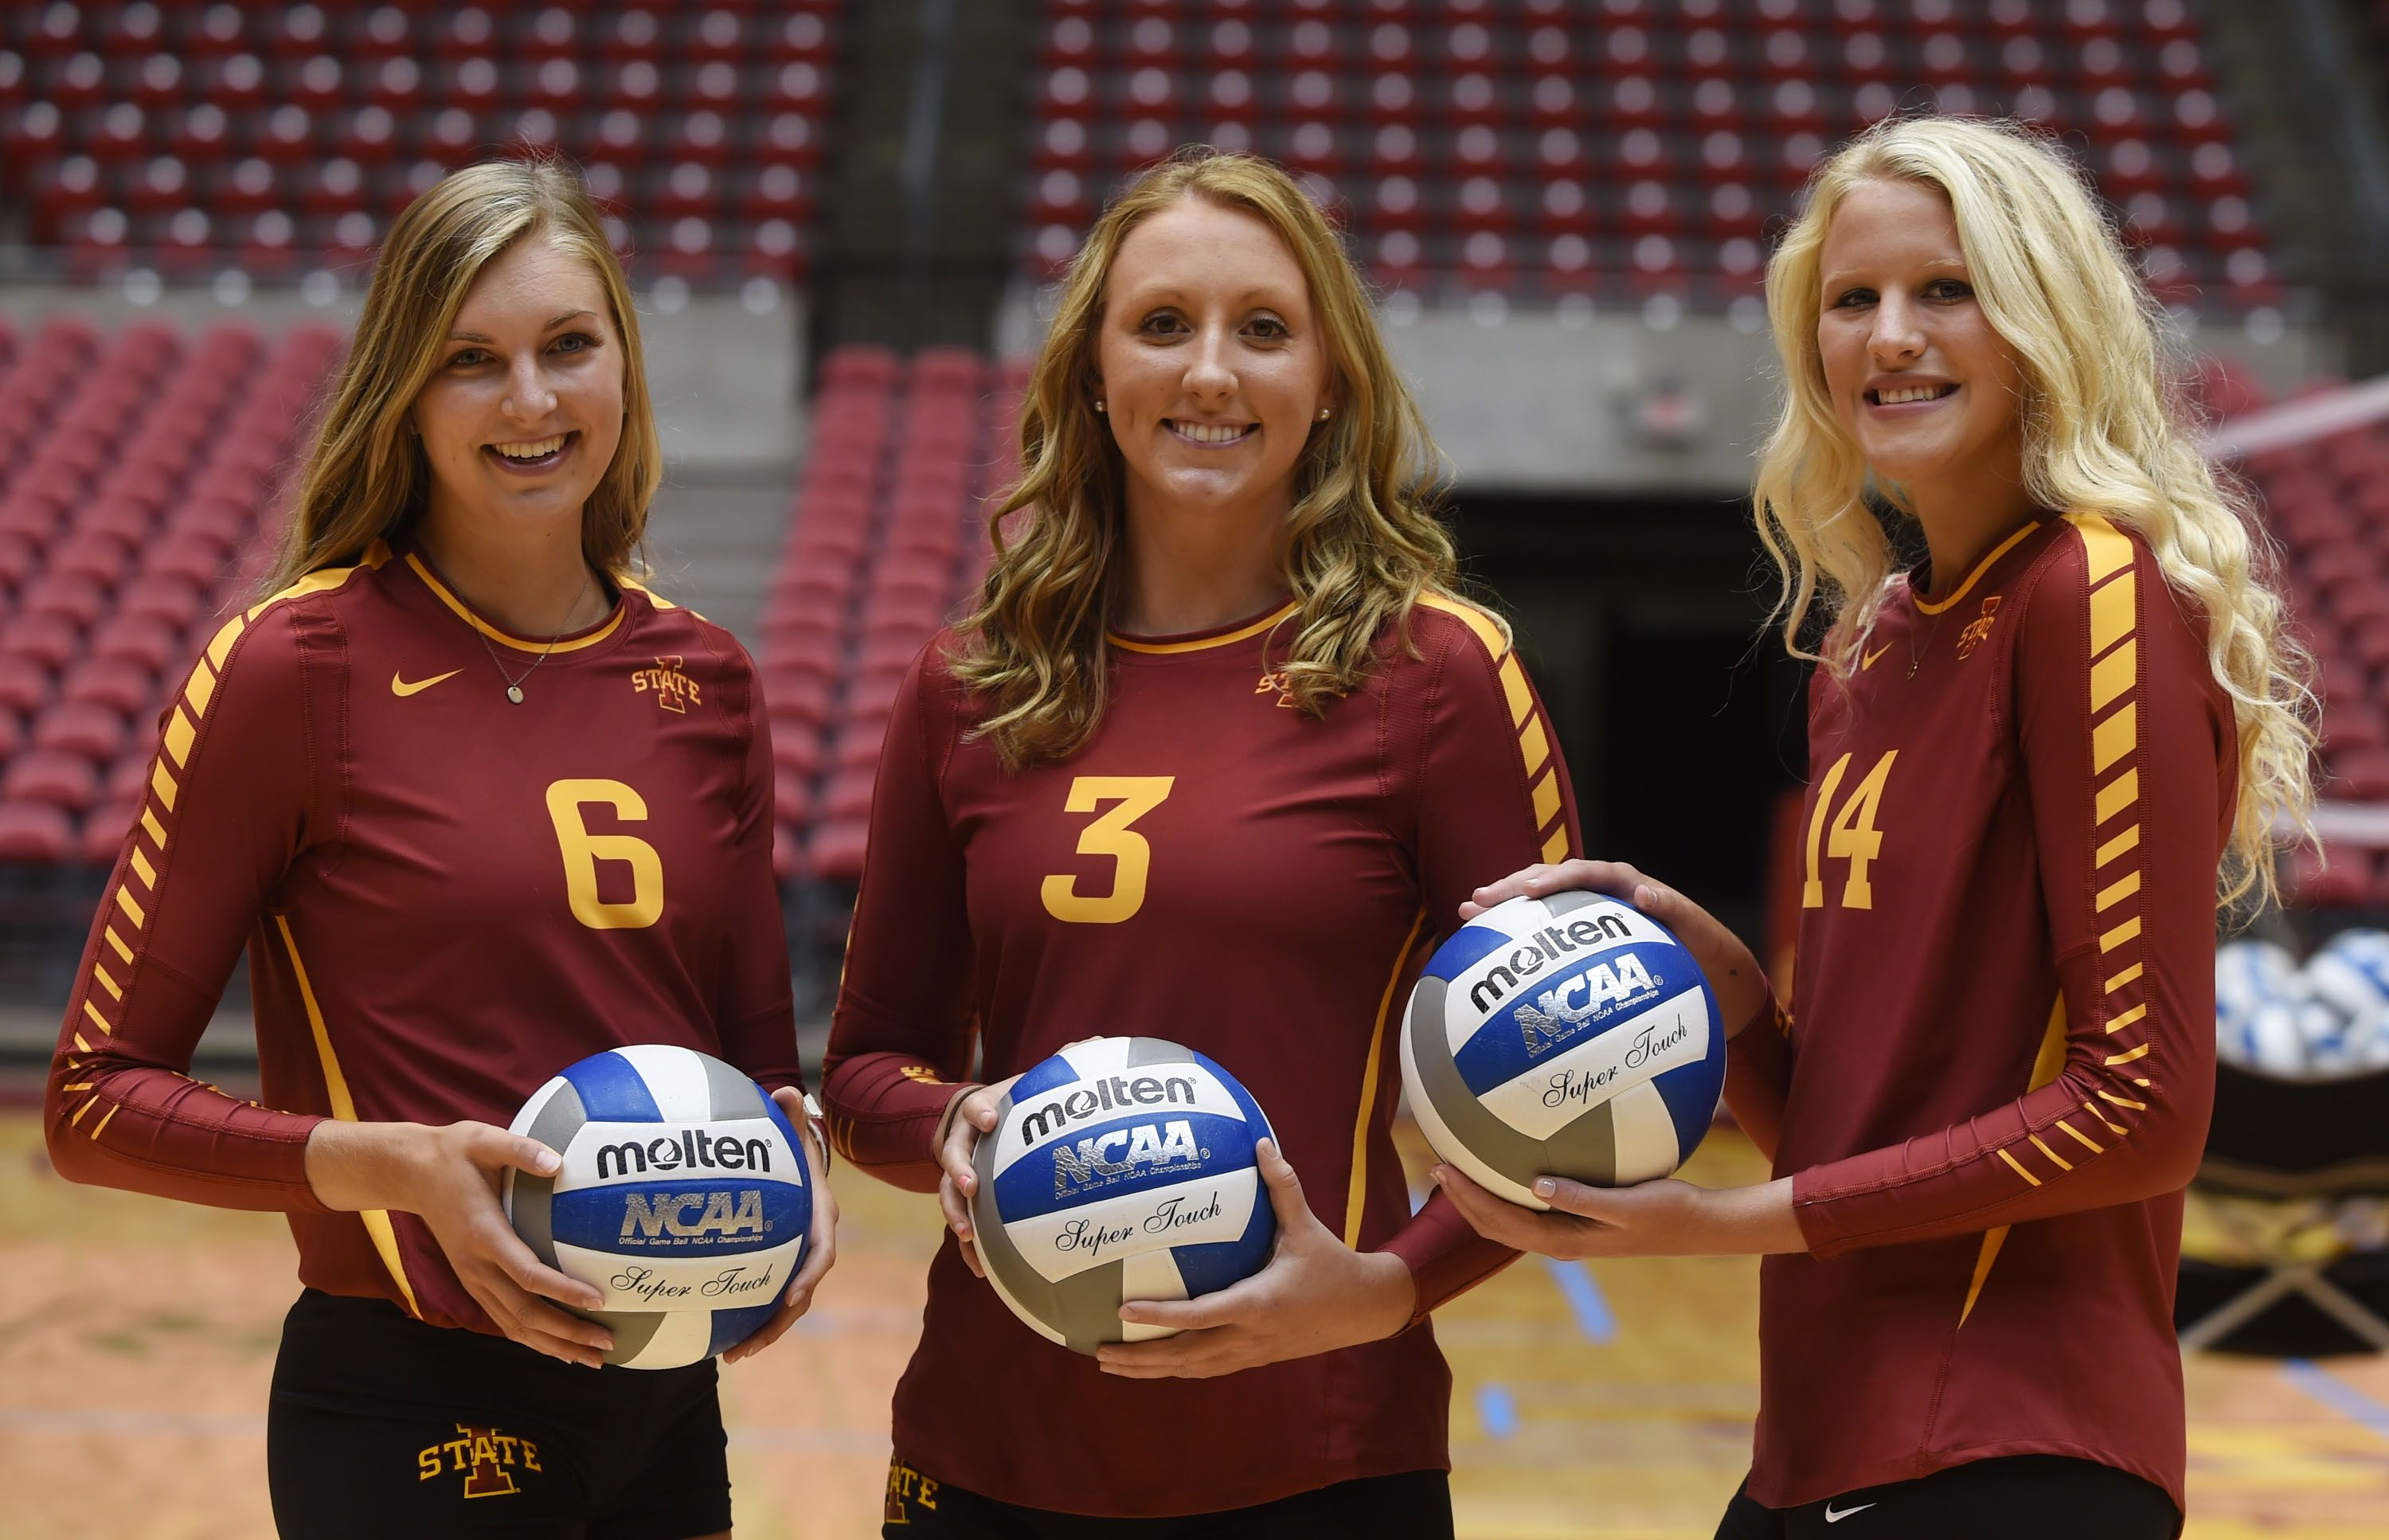 Iowa State Volleyball Players From Left Alexis Conaway Morgan Kuhrt And Jess Schaben Pose During Media Day Iowa State Cyclones Iowa State Volleyball Players